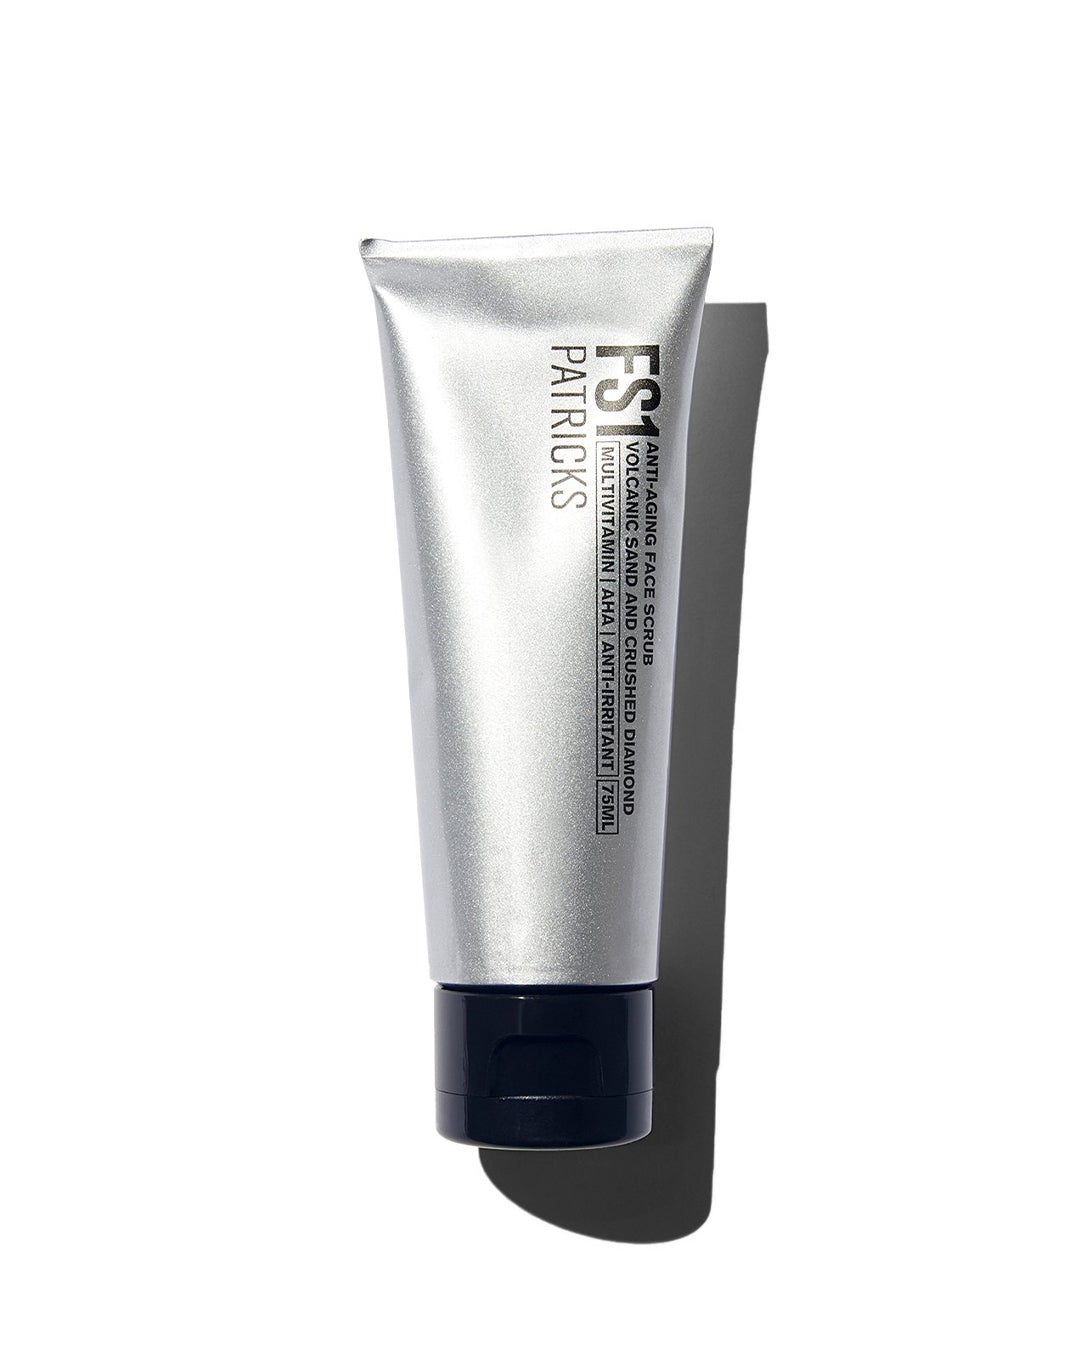 Patricks Face Scrub in silver tube with black lid on white background